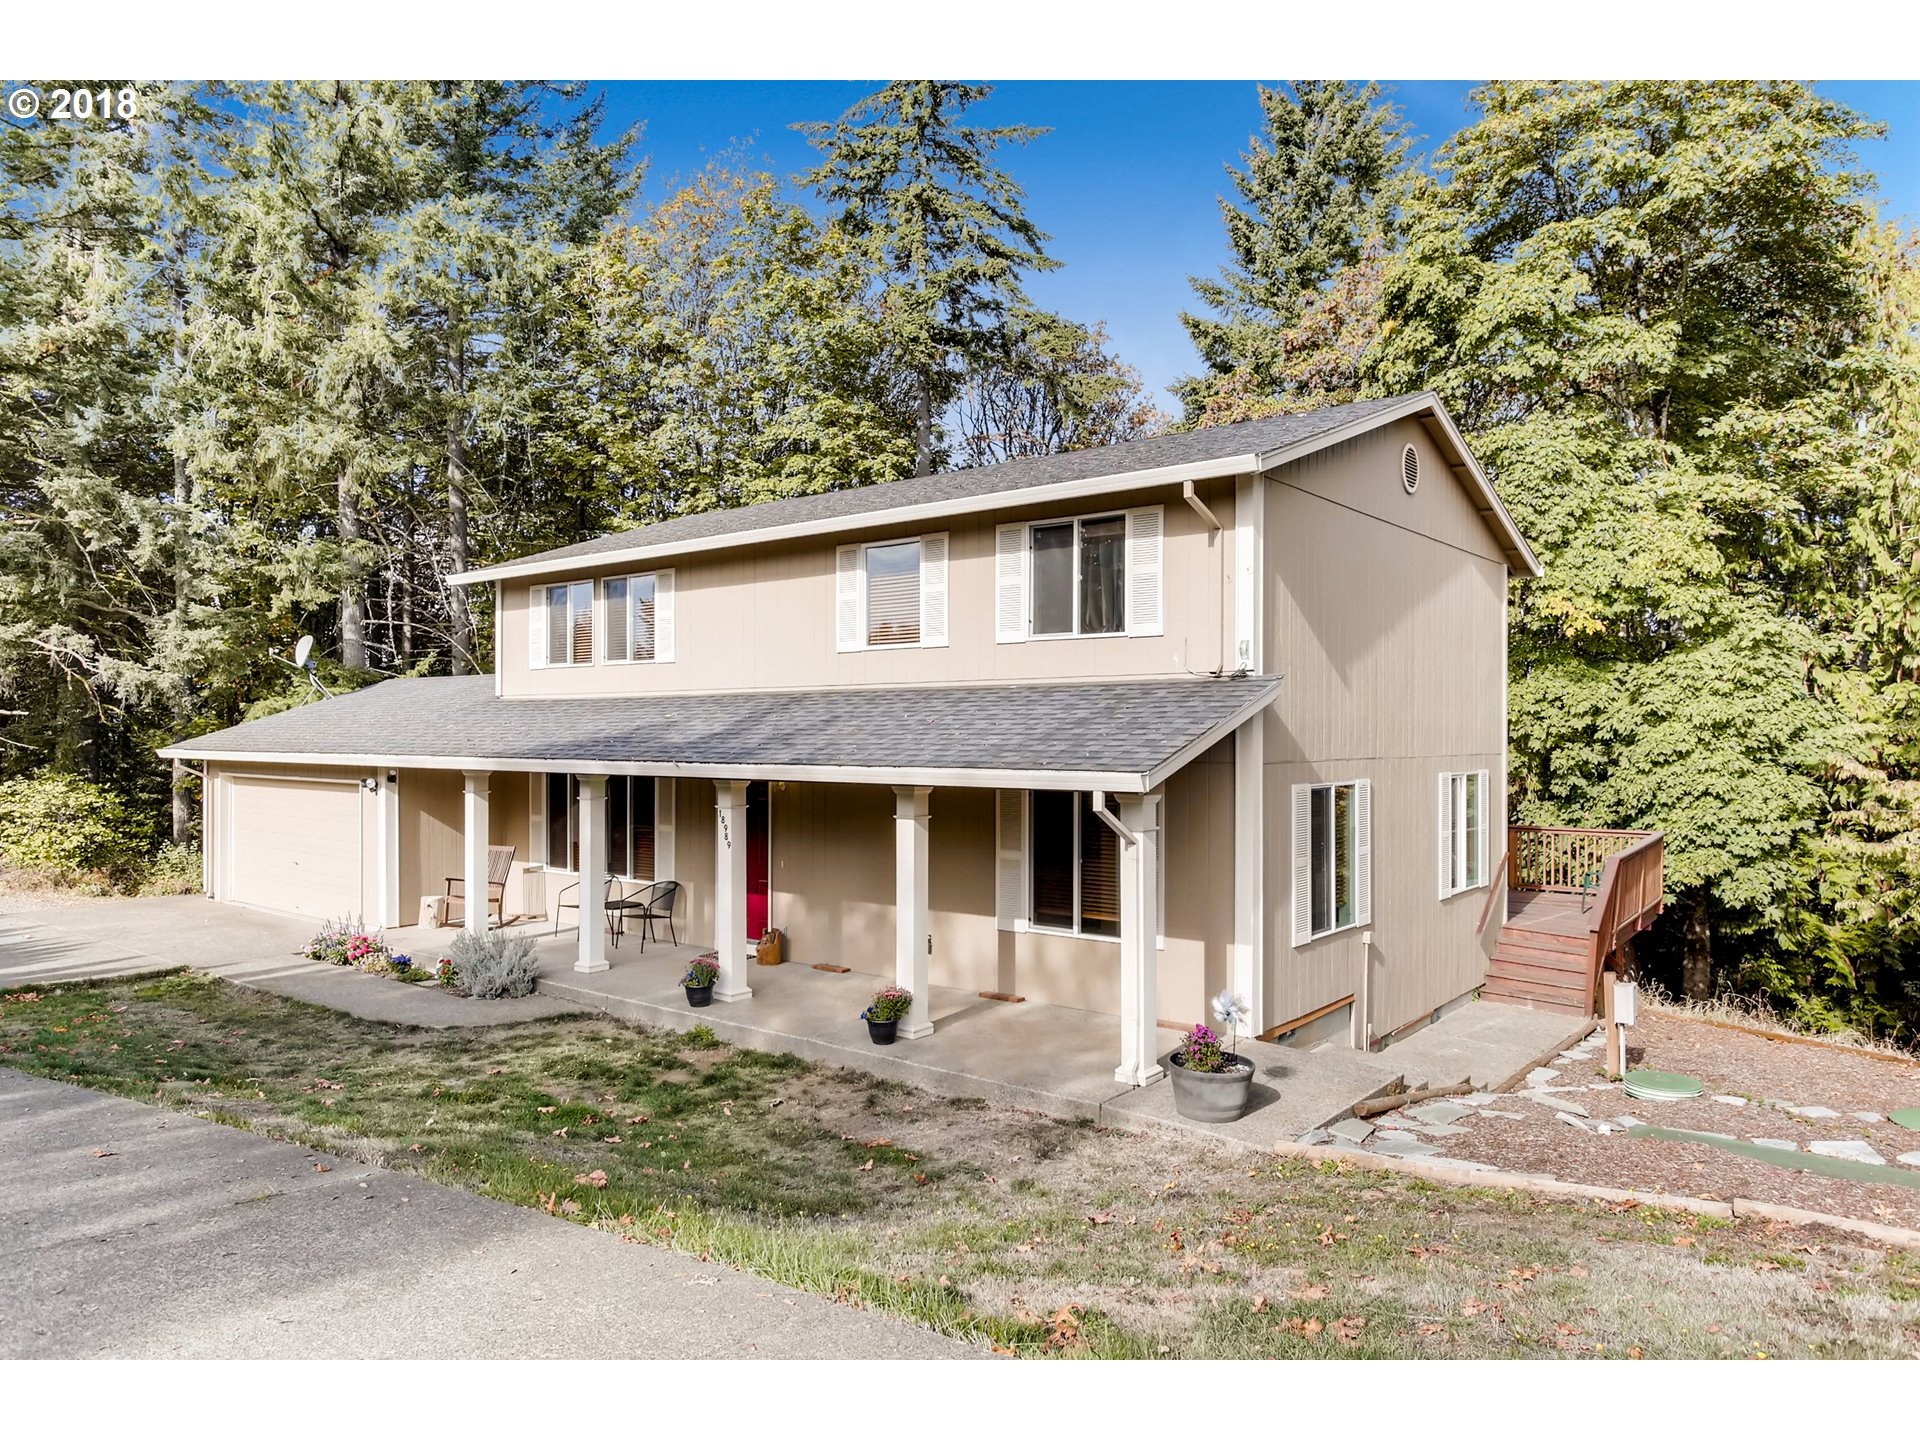 Open house 10/13 12-2! Fall in love with this charming property on Pumpkin Ridge.Just minutes from the Pumpkin Ridge Golf Course.Updates include laminate flooring downstairs, newer water heater, carpet and exterior paint. All bedrooms are upstairs. 4th bedroom could be a bonus room. Huge outdoor deck with amazing views of the trees, .34 lot and RV parking. Beautiful country setting yet close to highway access.